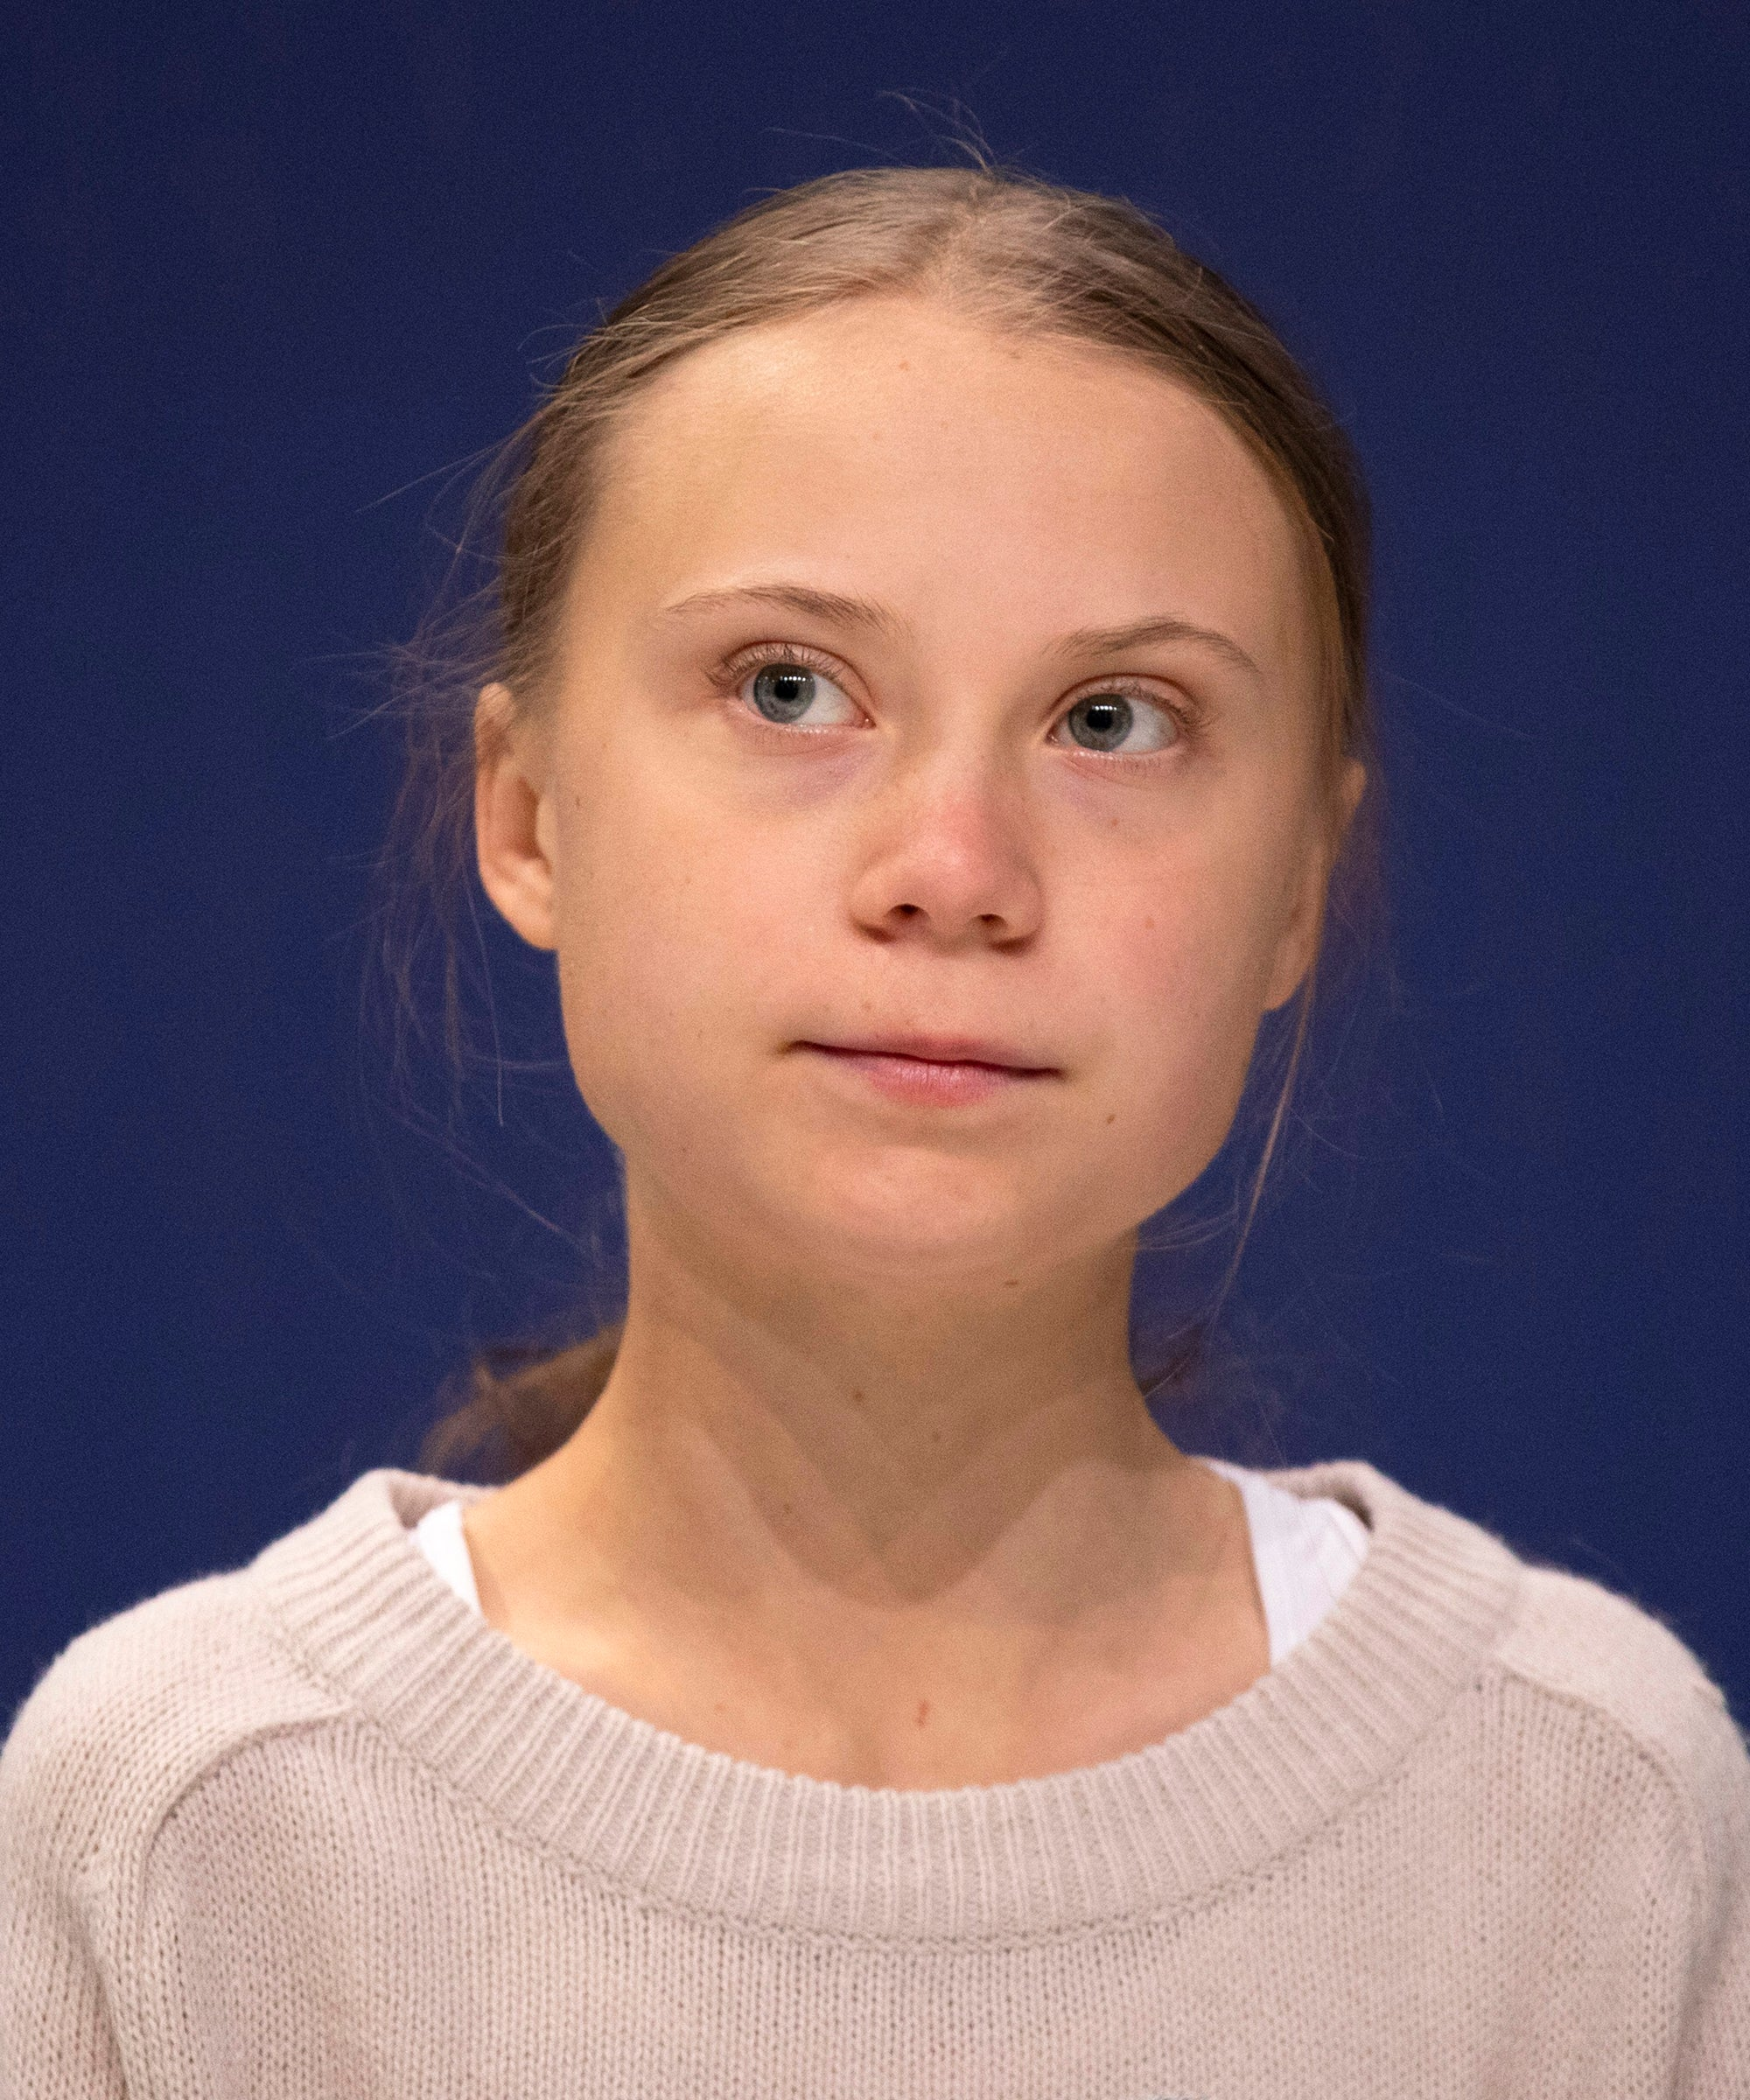 At 16, Greta Thunberg Is The Youngest TIME Person Of The Year Ever